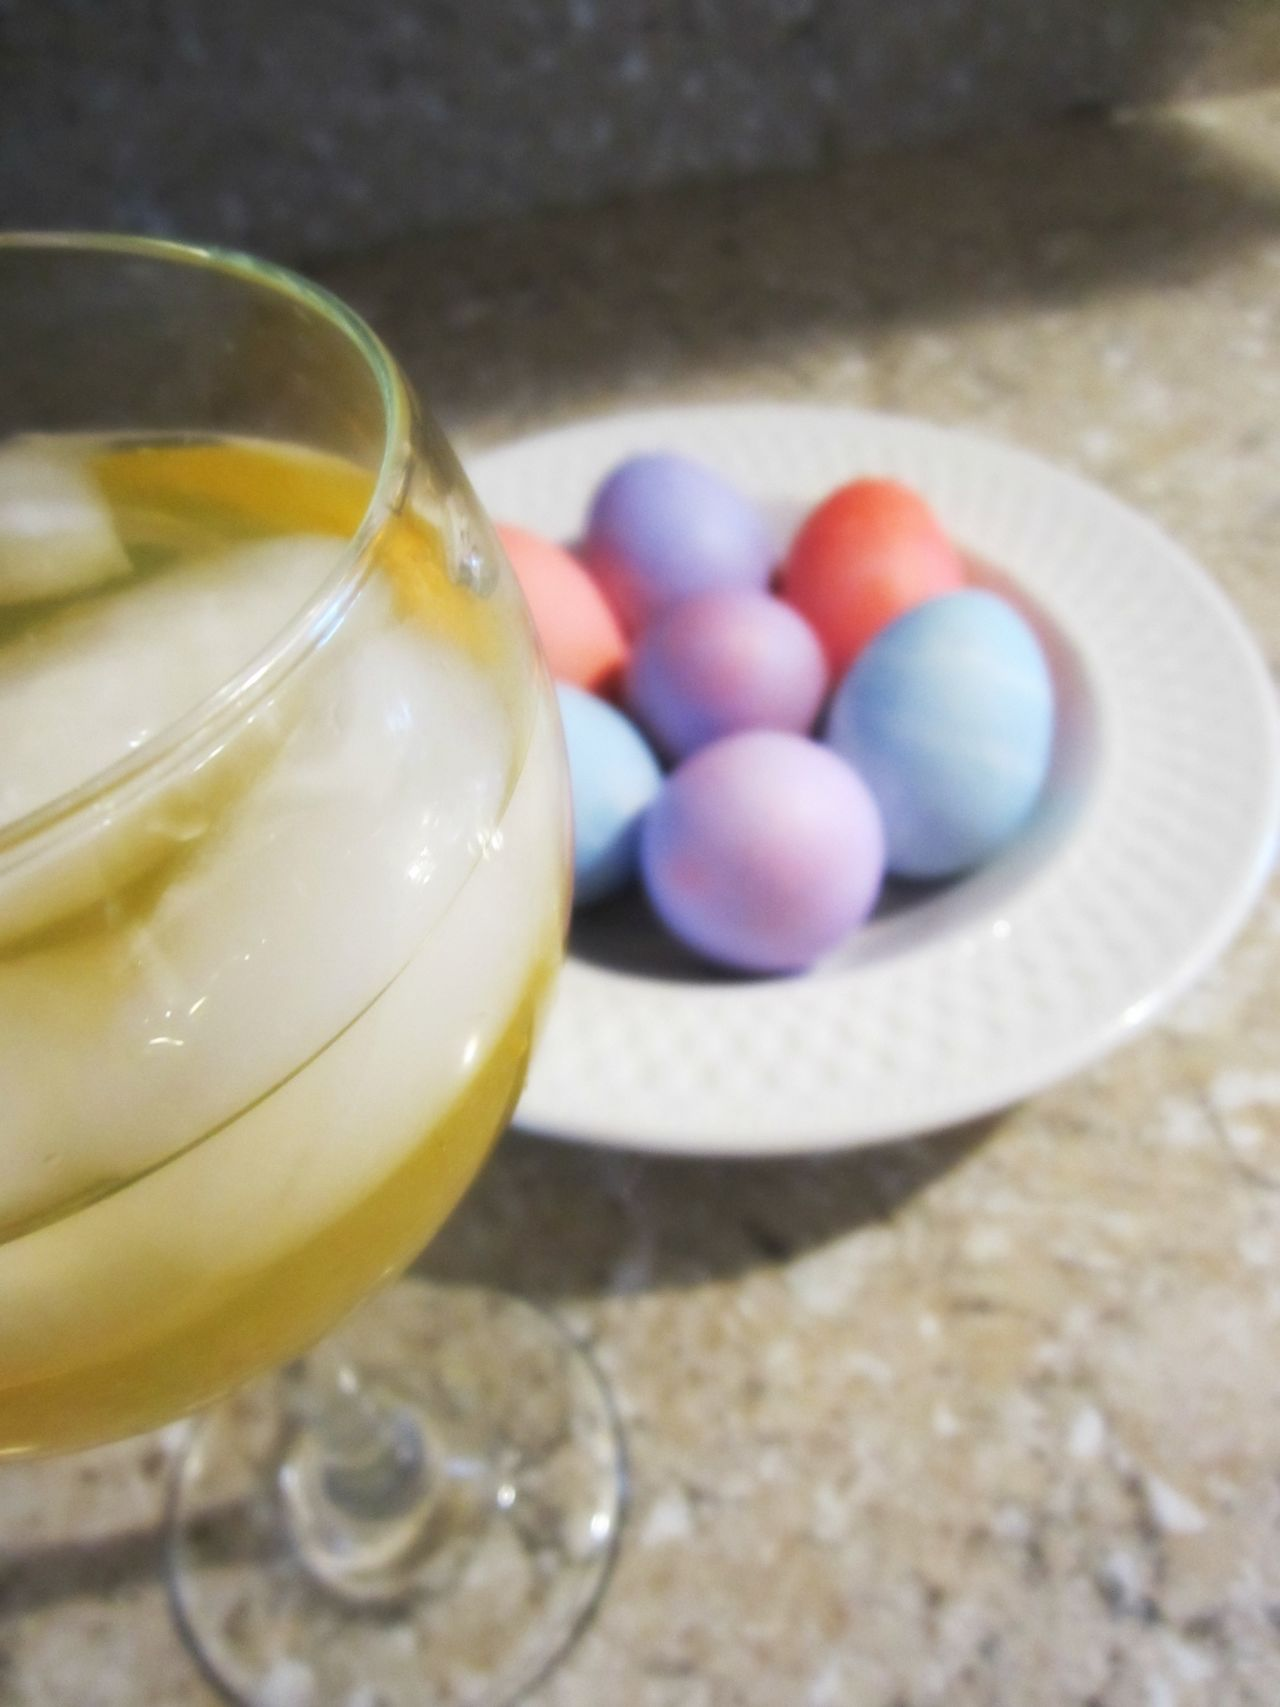 Bowl Close-up Colored Eggs Colorful Easter Easter Eggs Focus On Foreground Ice Cube Multi Colored Ready-to-eat Wine